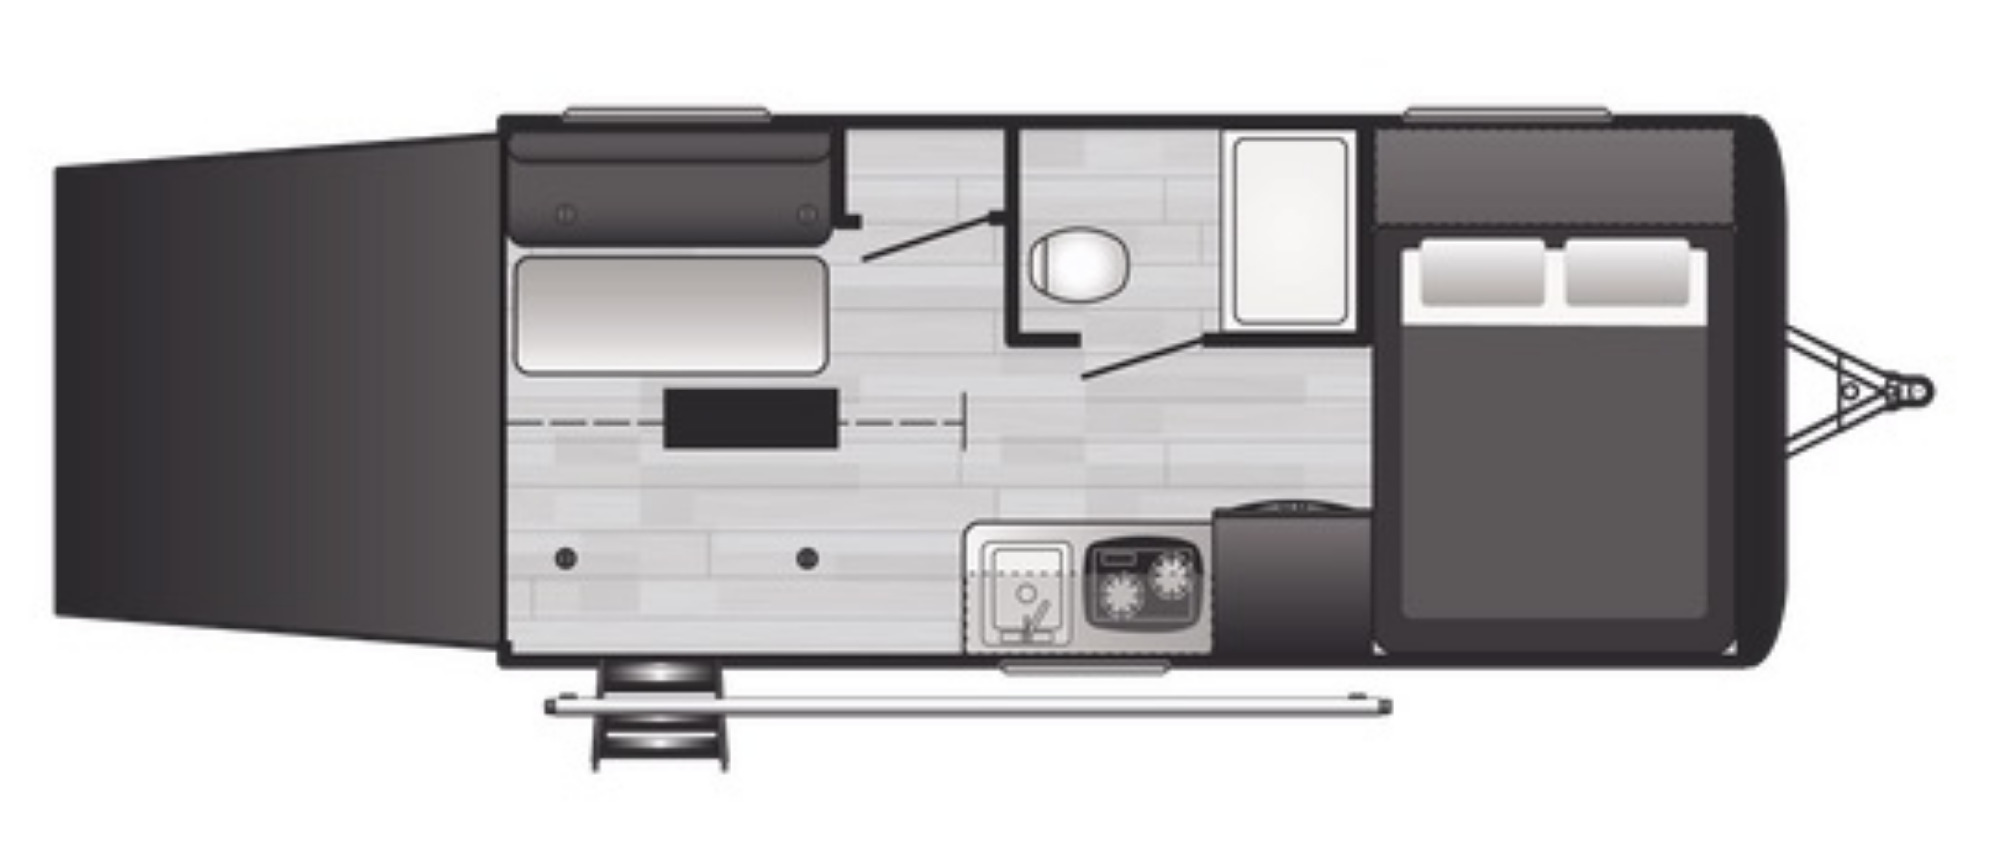 View Floor Plan for 2021 KEYSTONE HIDEOUT 172TX